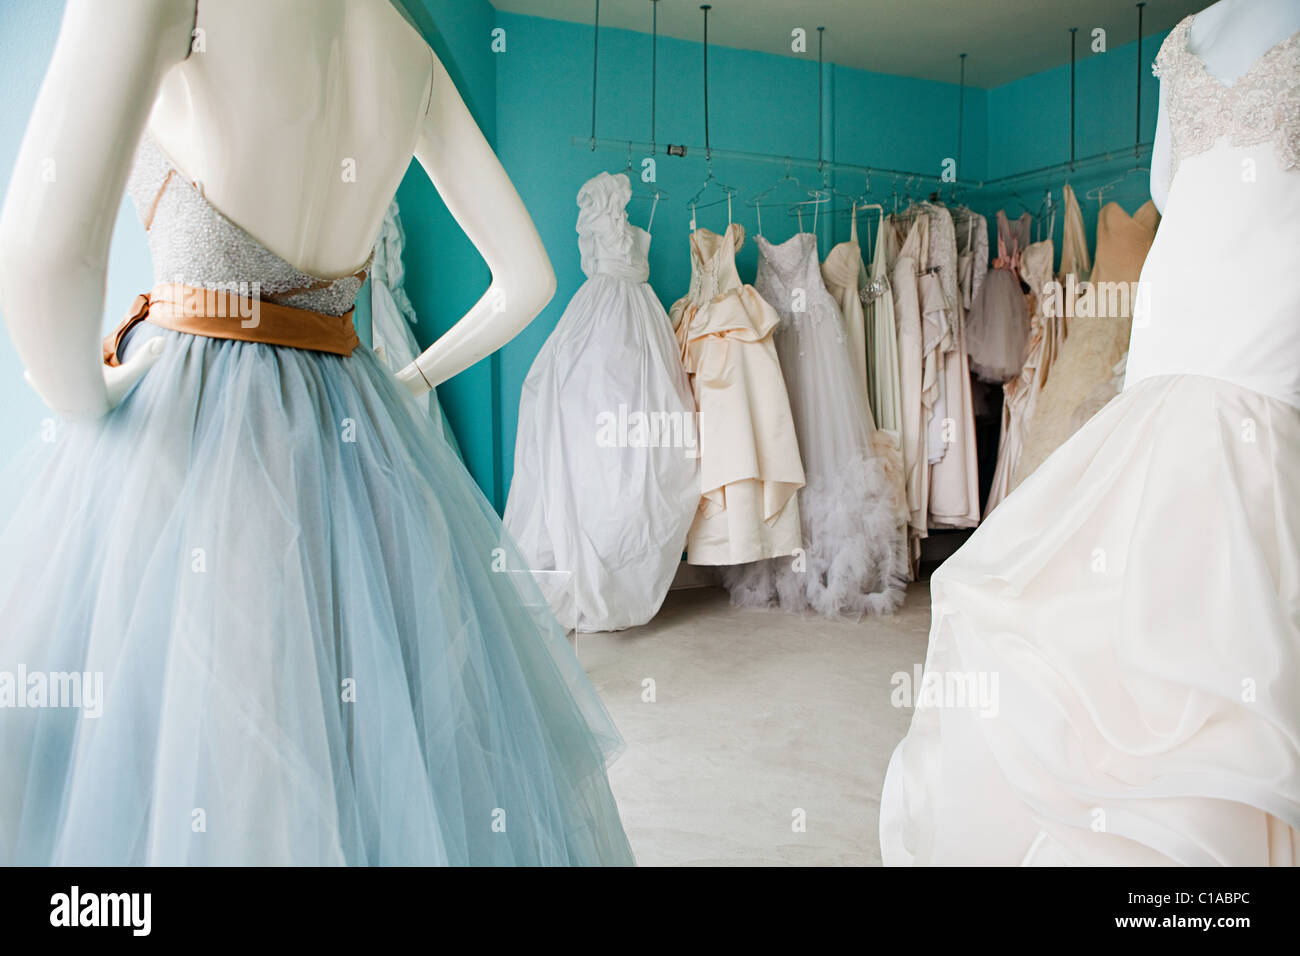 Selection of wedding dresses in boutique - Stock Image